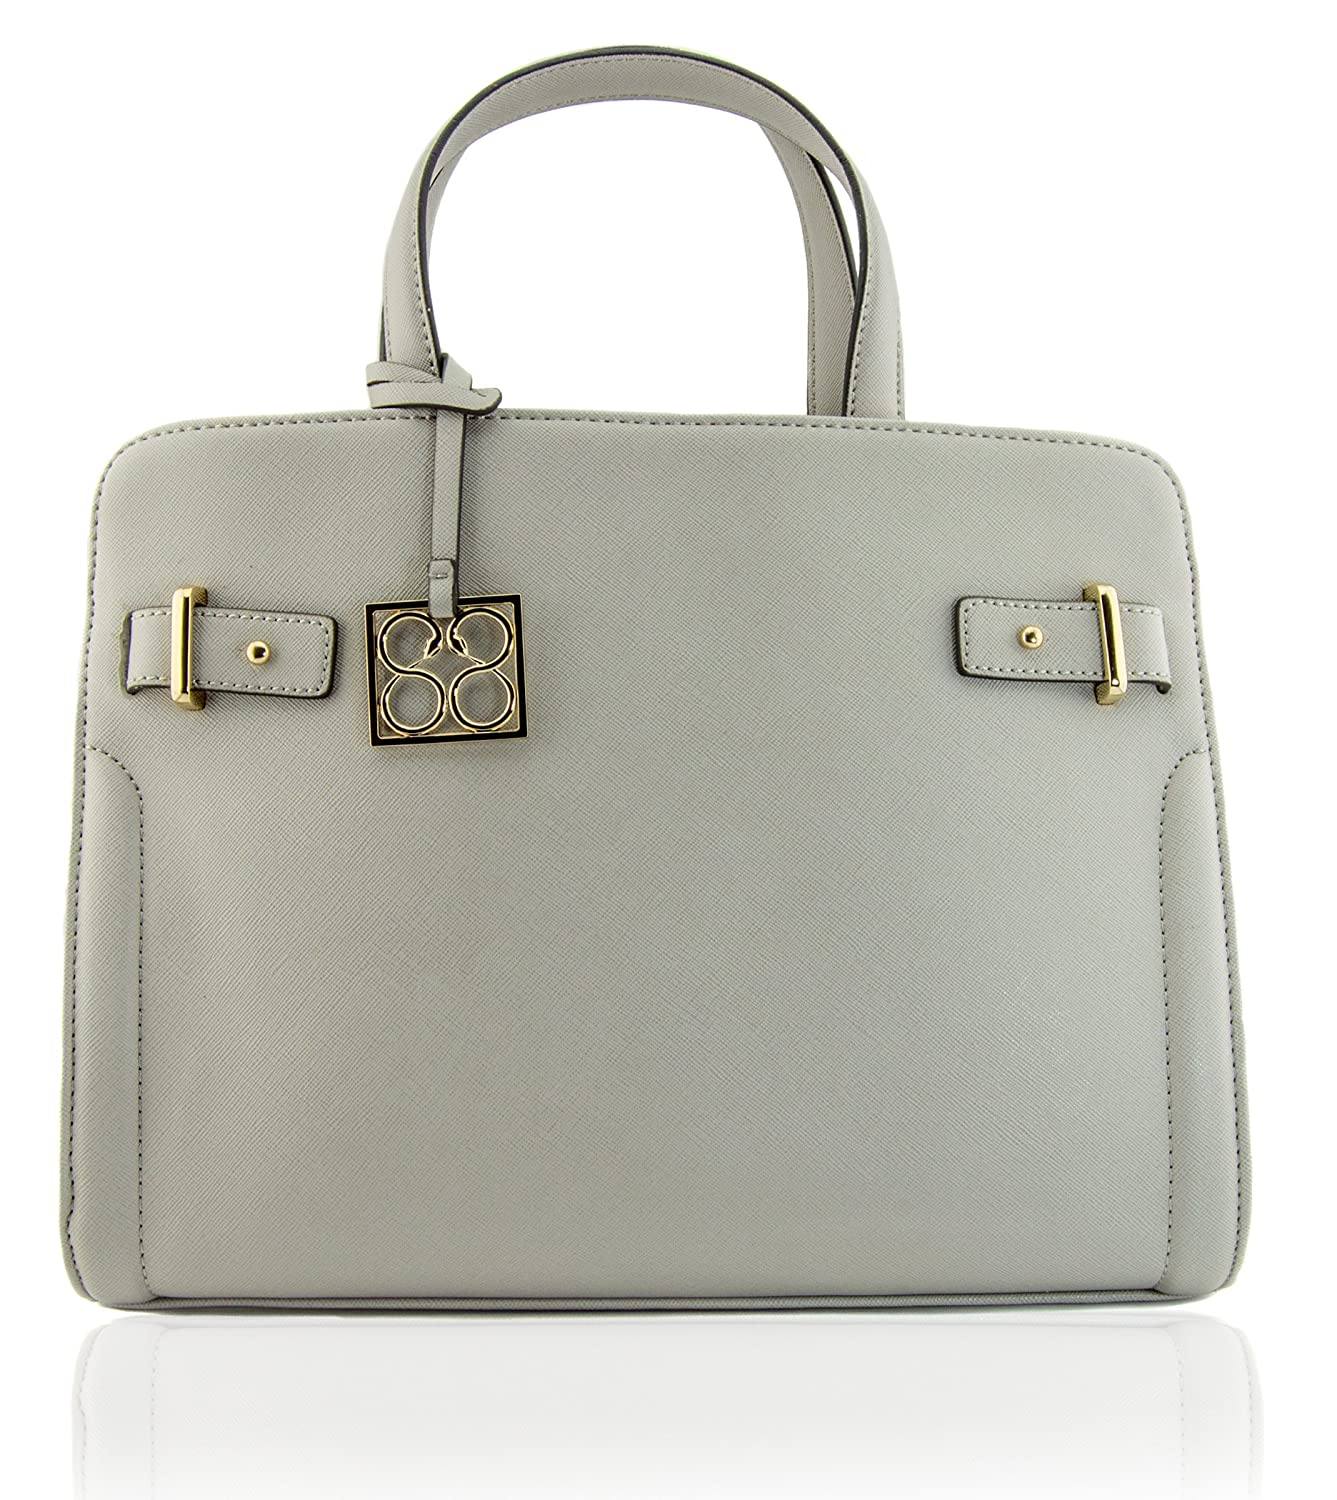 88 Katie Medium Satchel